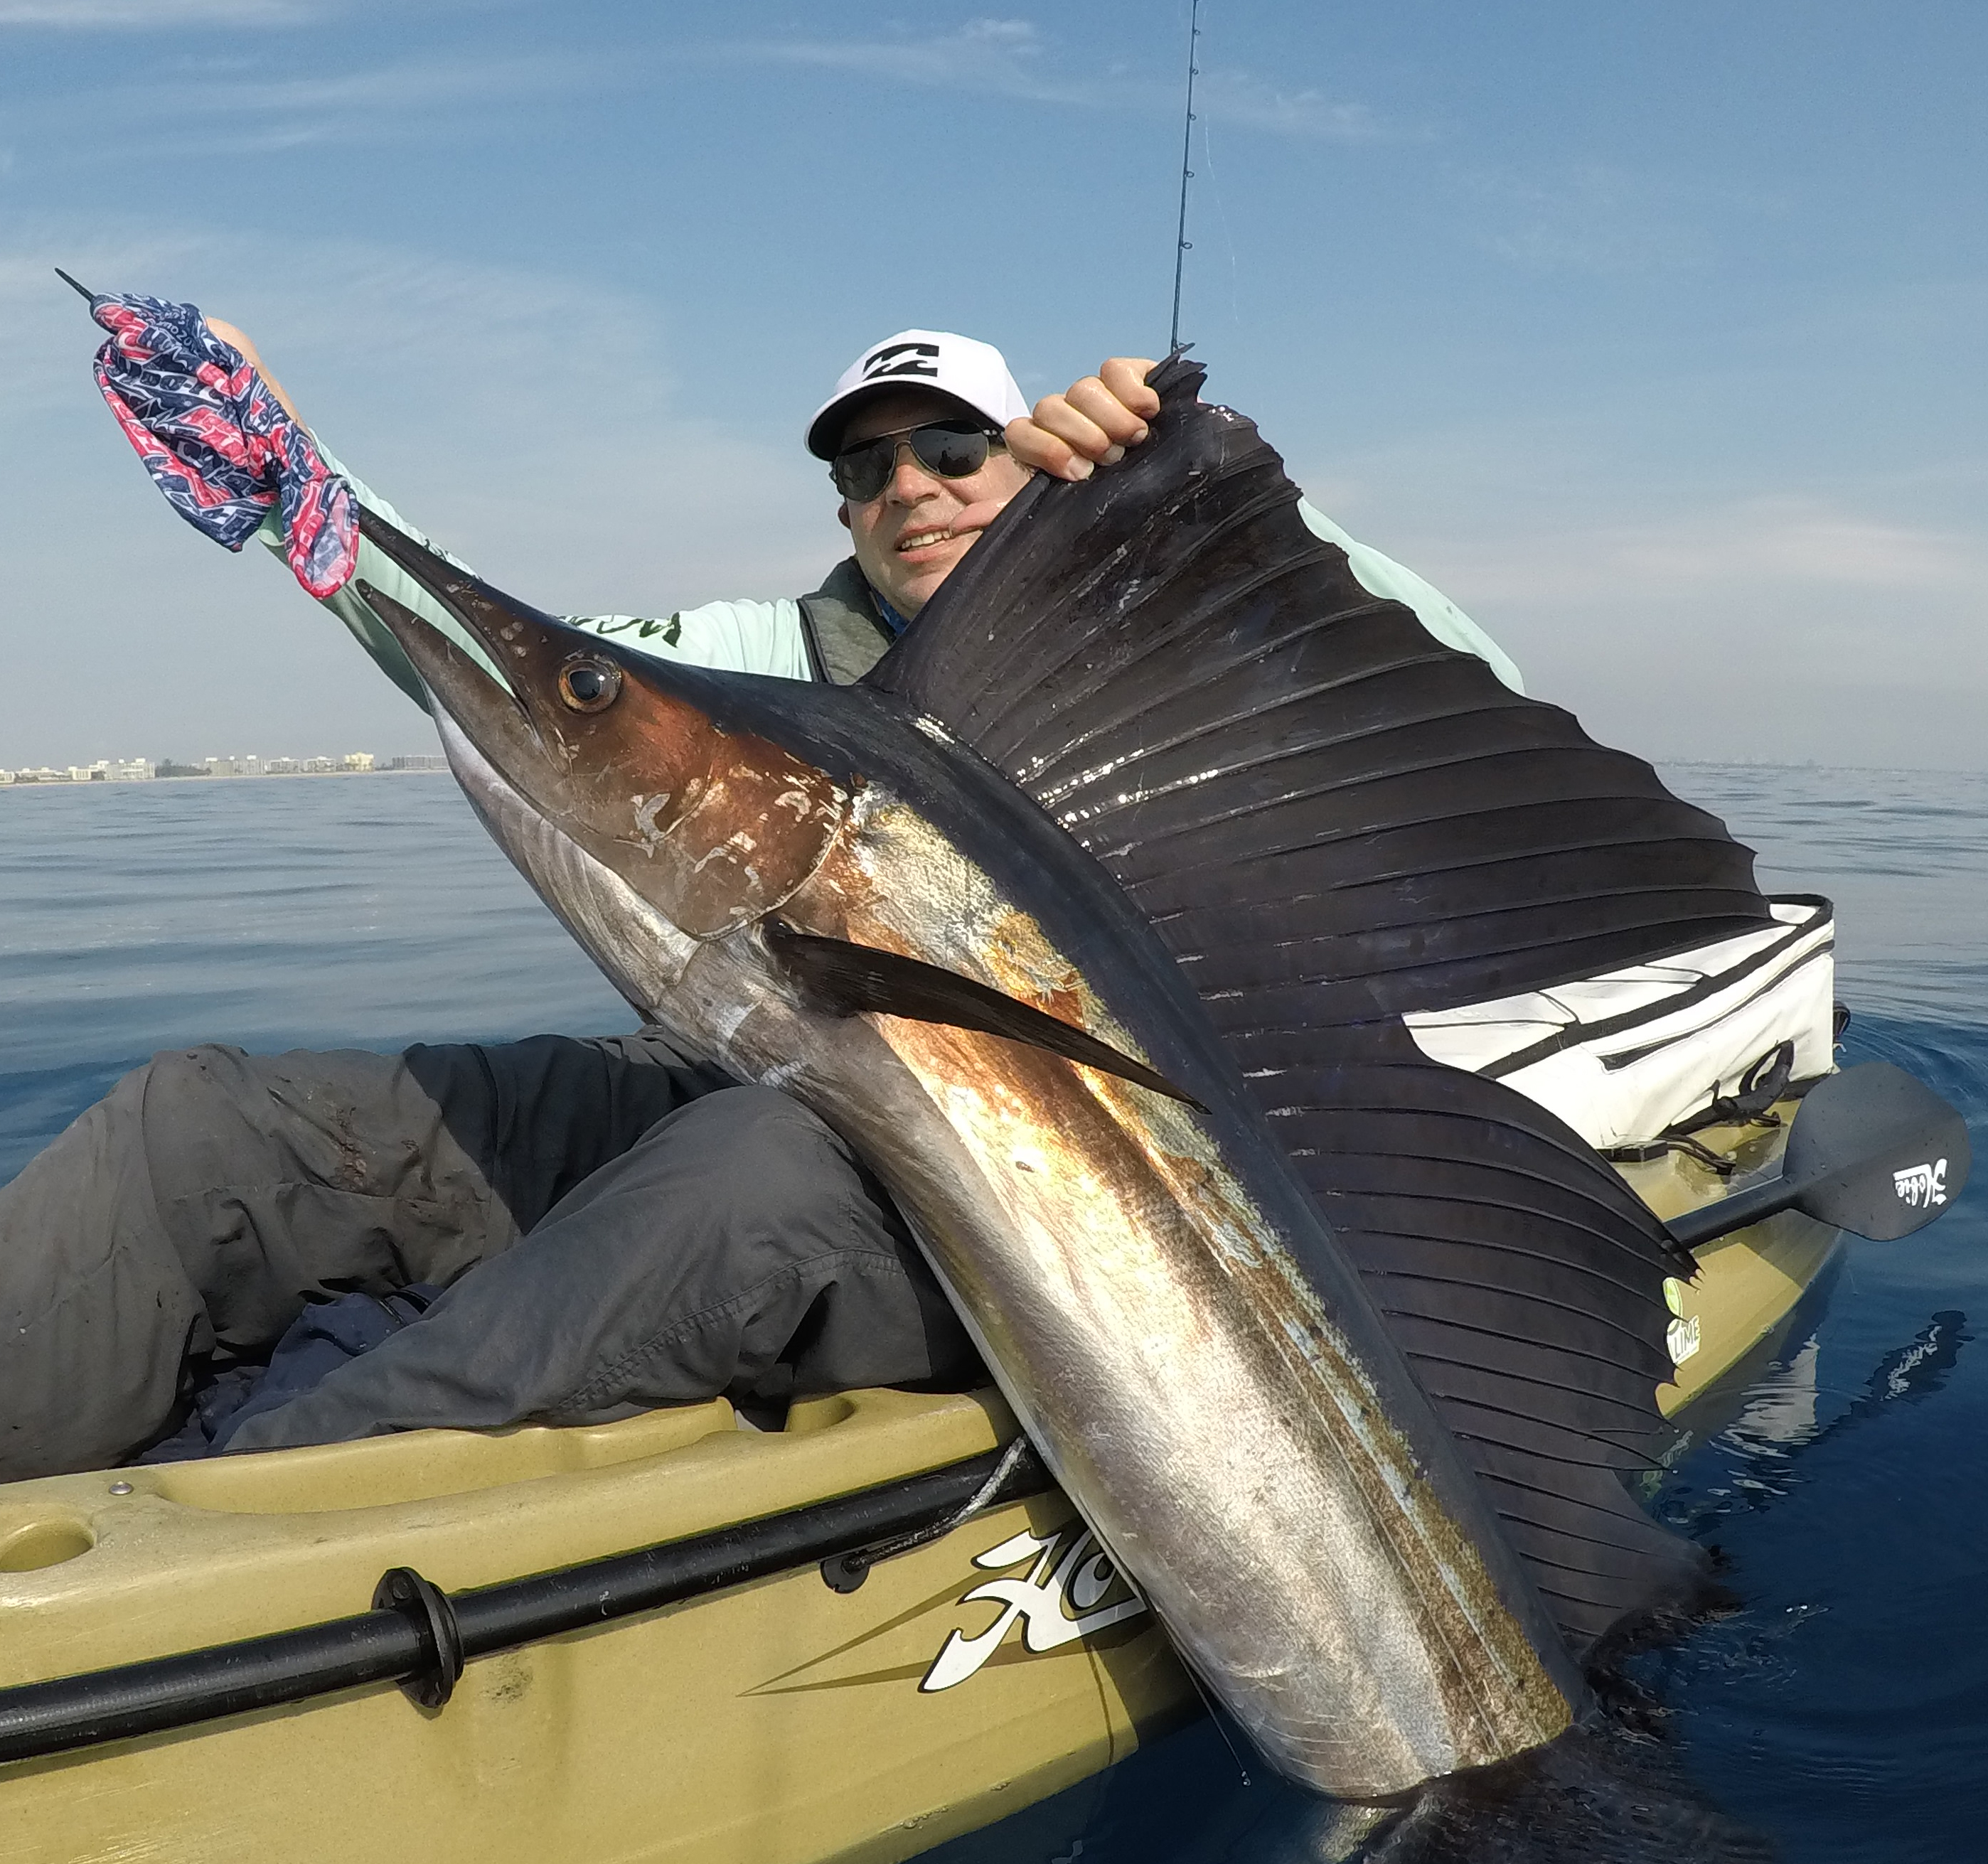 sailfish charters pushin water kayak fishing charters